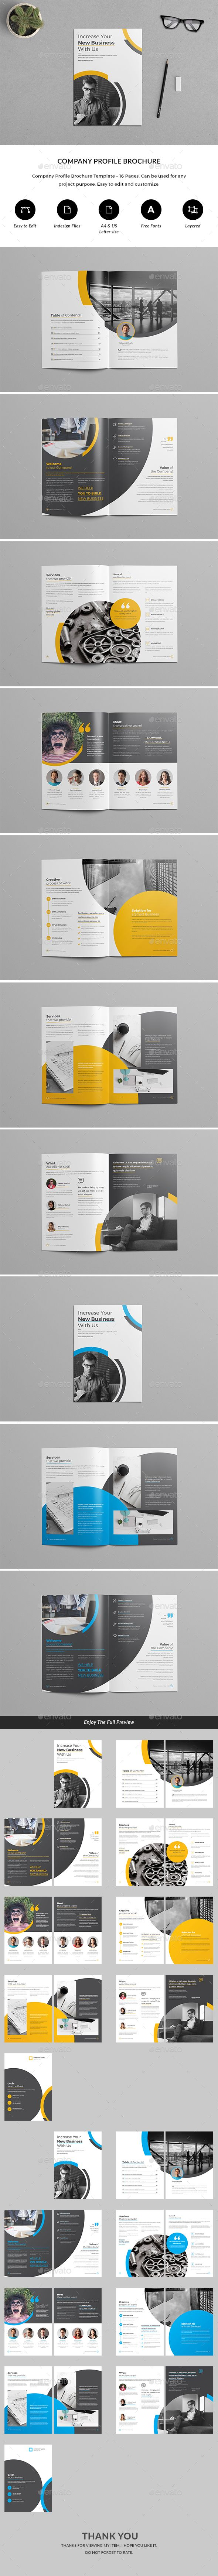 104 best Layouts and Templates images on Pinterest | Info graphics ...